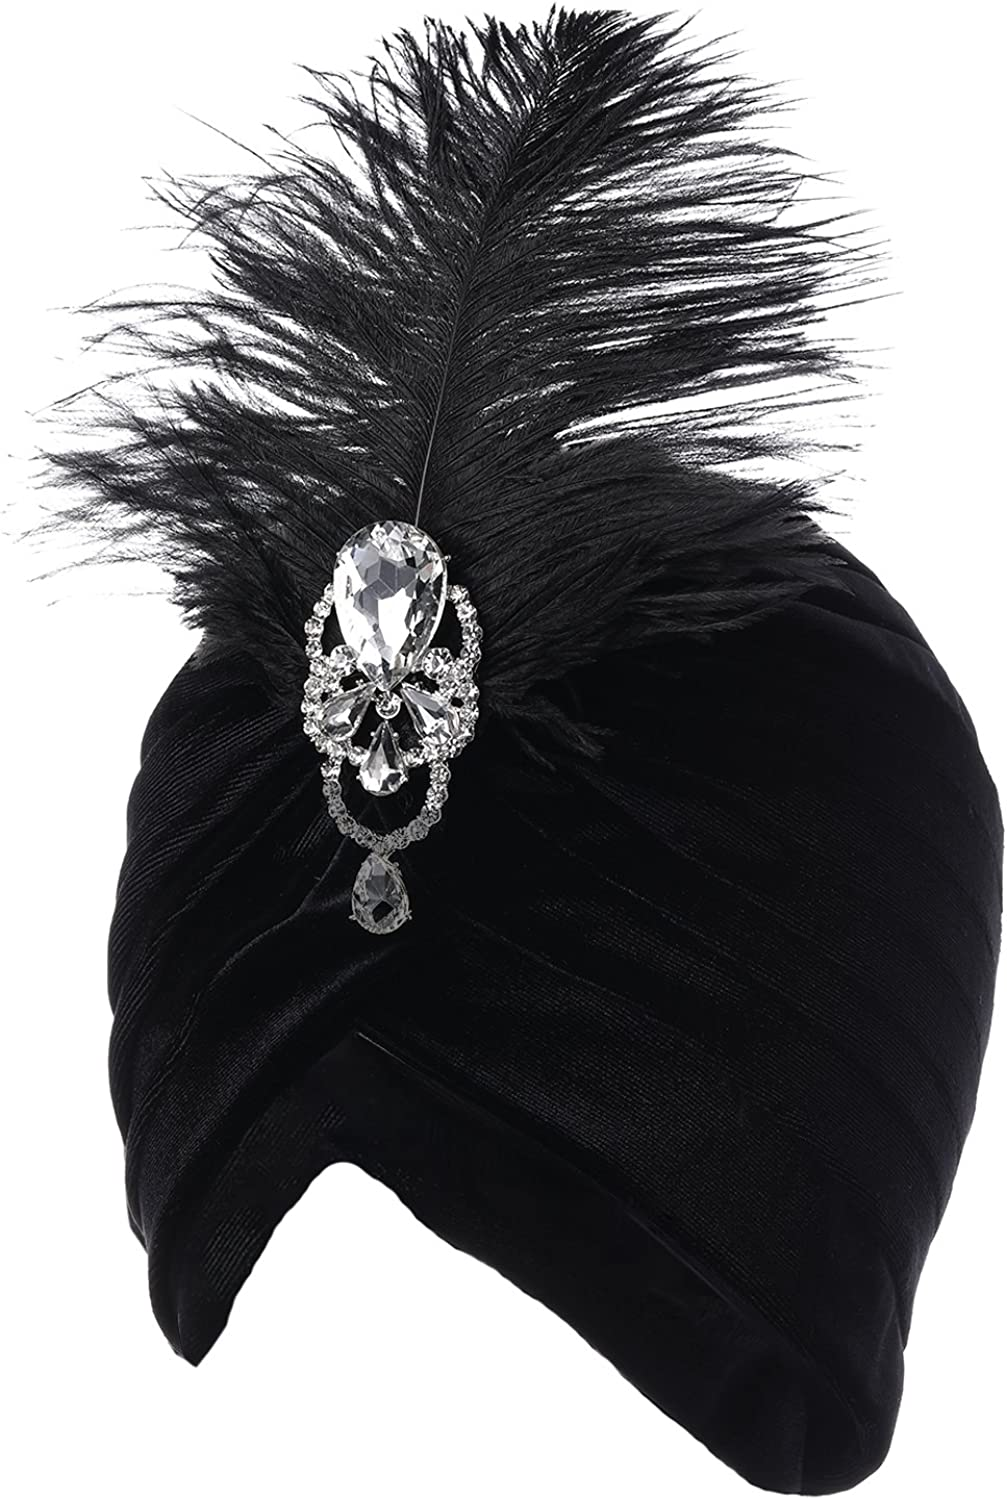 1920s Accessories | Great Gatsby Accessories Guide ArtiDeco Ruffle Turban Hat for Women Feather Turban Hat with Detachable Crystal Brooch Headwraps Knit Pleated Turban Hat Vintage £10.99 AT vintagedancer.com